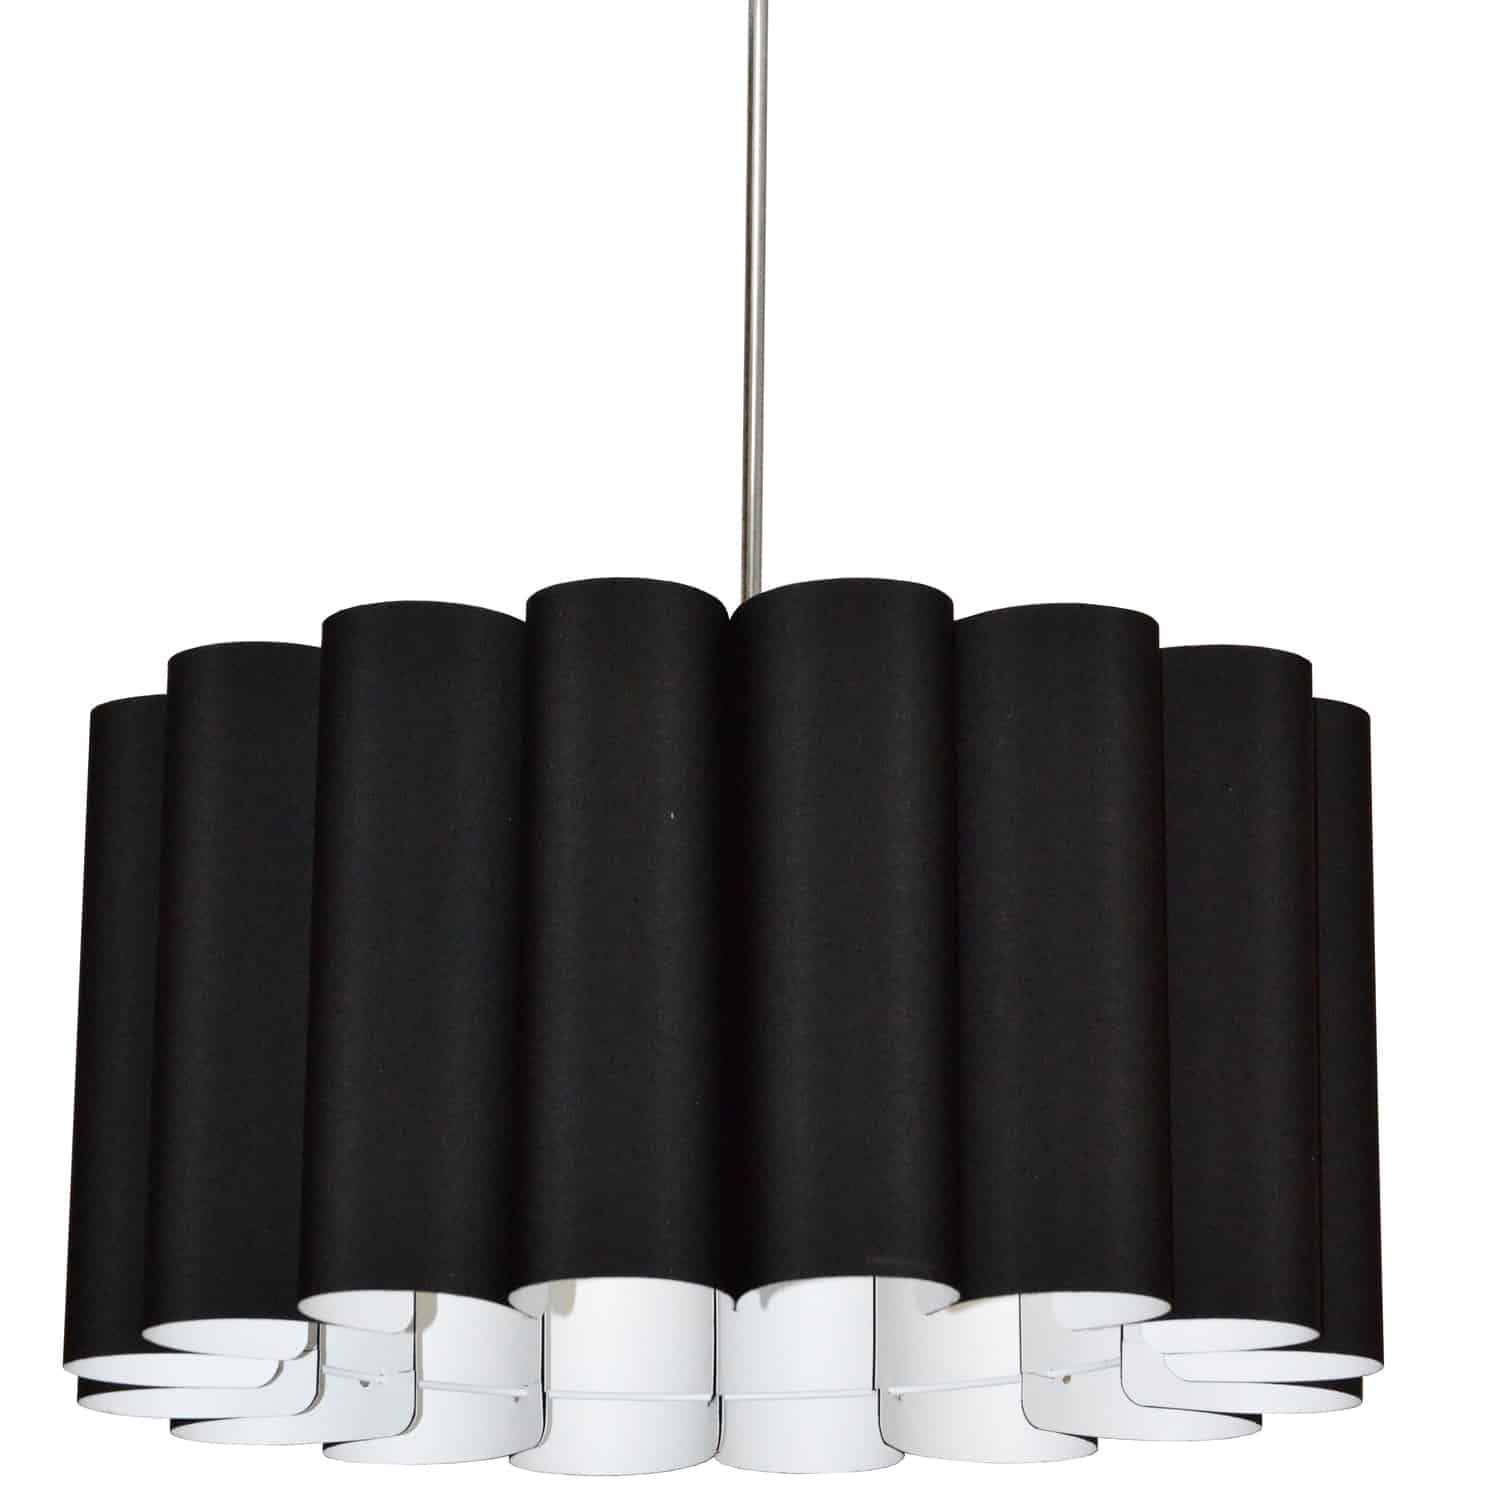 4 Light Sandra Pendant JTone Black Polished Chrome